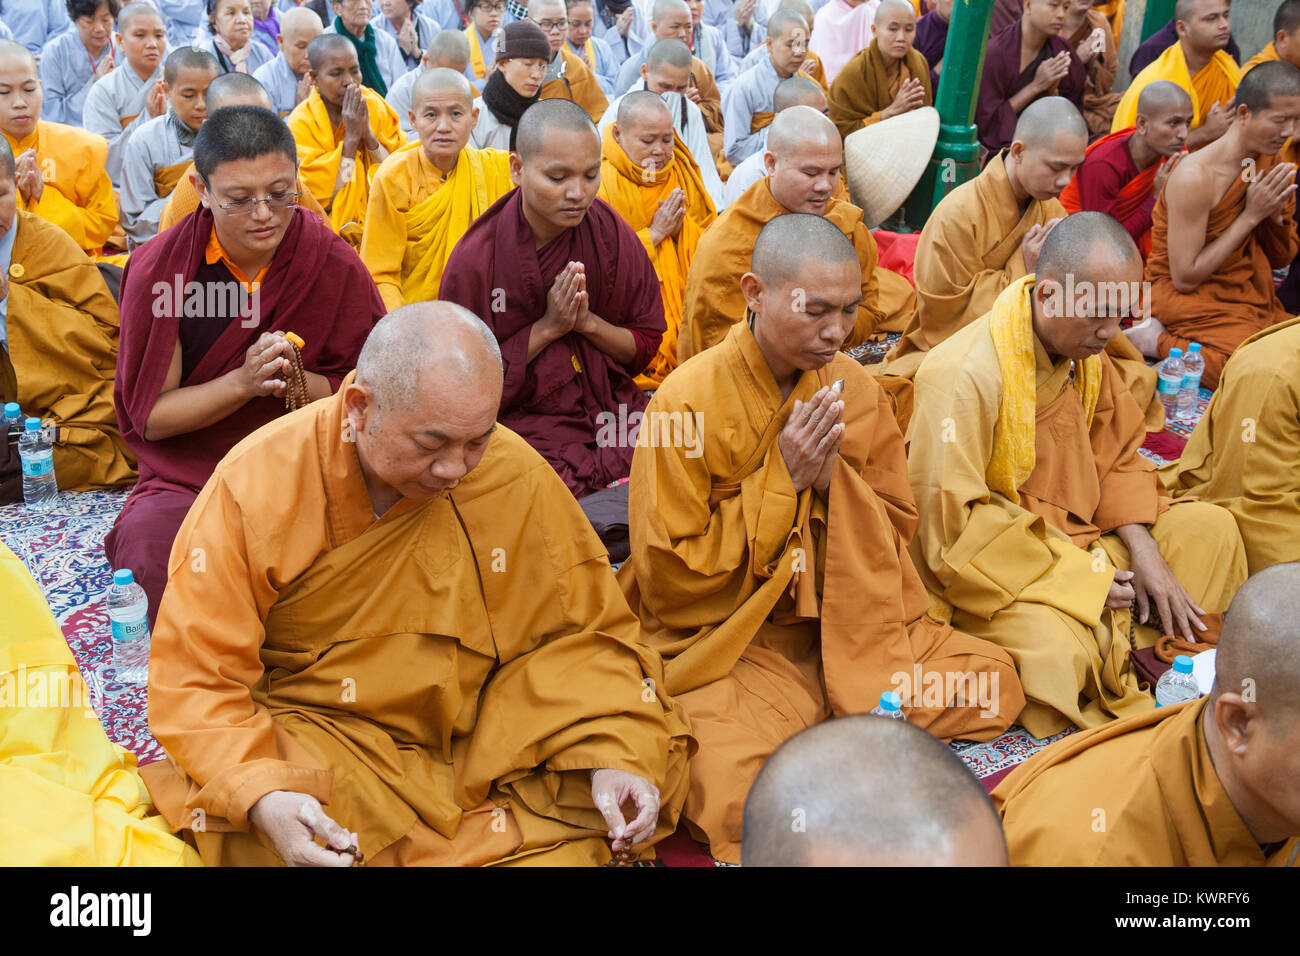 Monks praying at the foot of the Bodhi tree (where the Buddha is said to have gained enlightenment) at the Mahabodhi - Stock Image